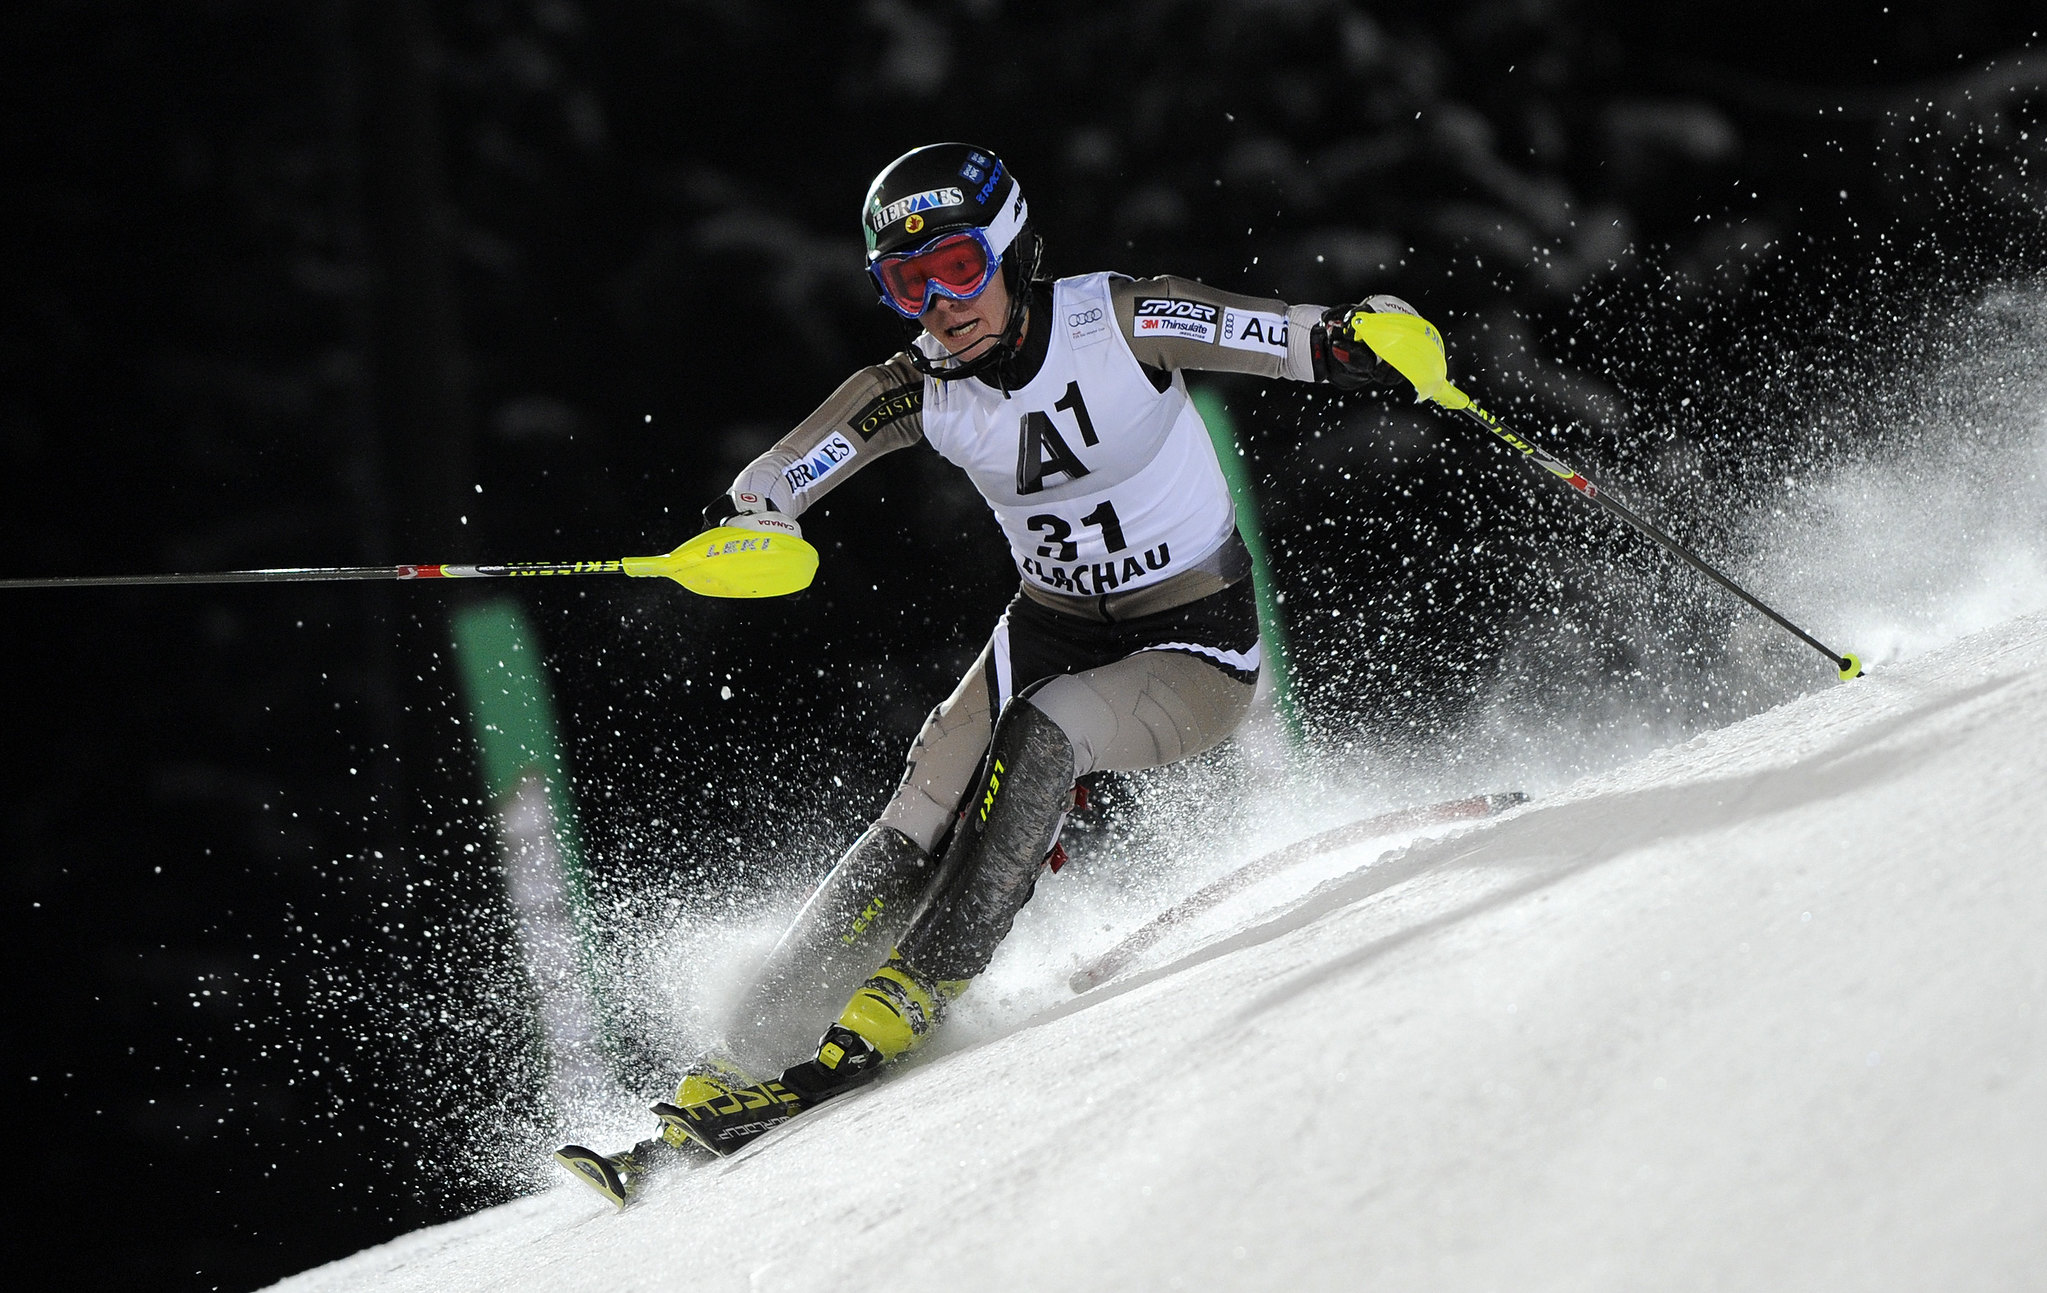 Brittany Phelan in action in the World Cup night slalom in Flachau, Austria.